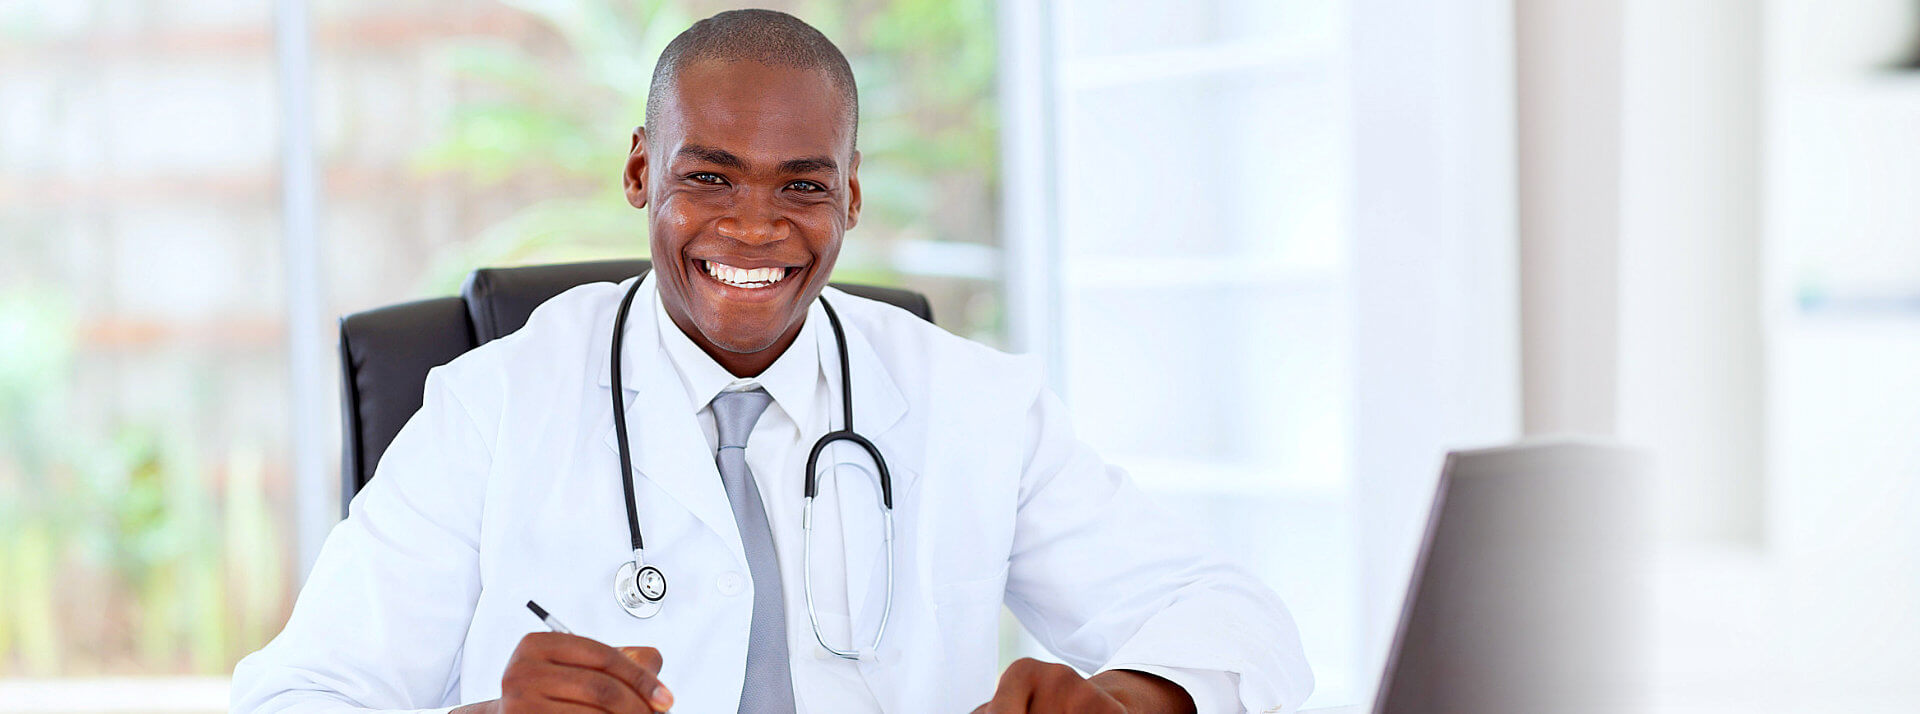 healthcare professional smiling